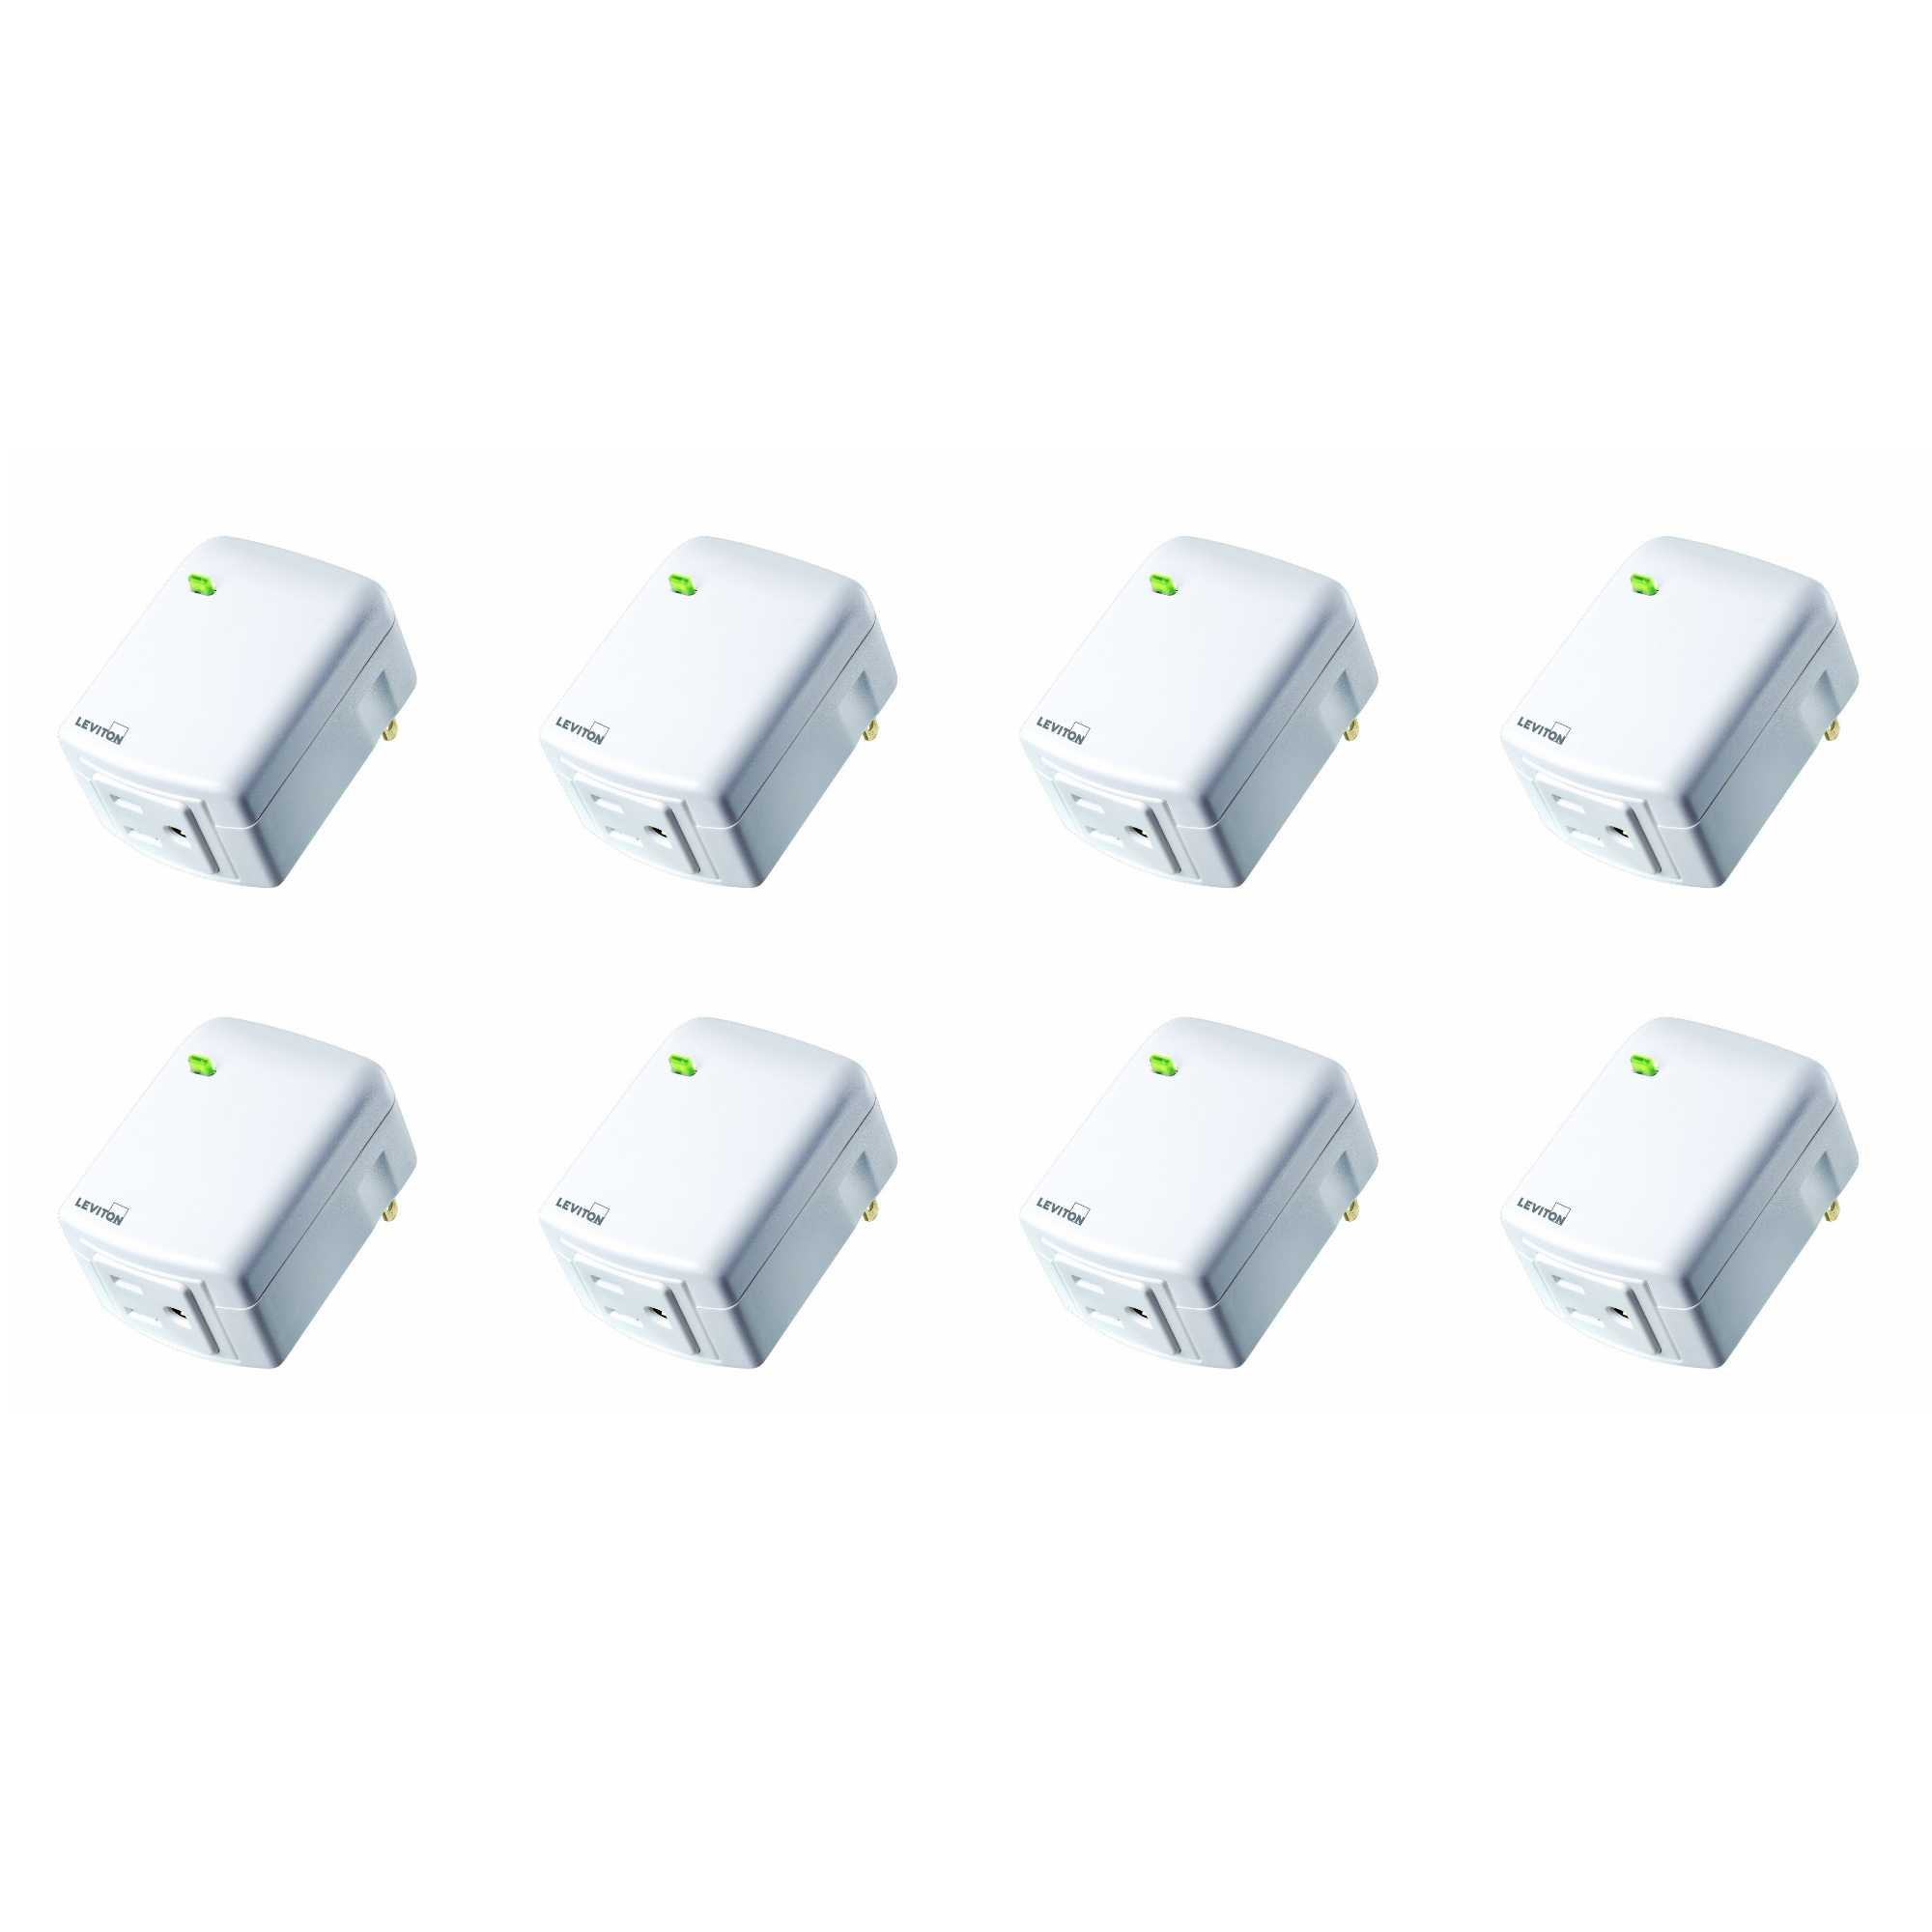 Leviton DW15A-1BW Decora Smart Wi-Fi Plug-in Outlet, Works with Amazon Alexa, No Hub Required (8 Pack) by Leviton (Image #1)